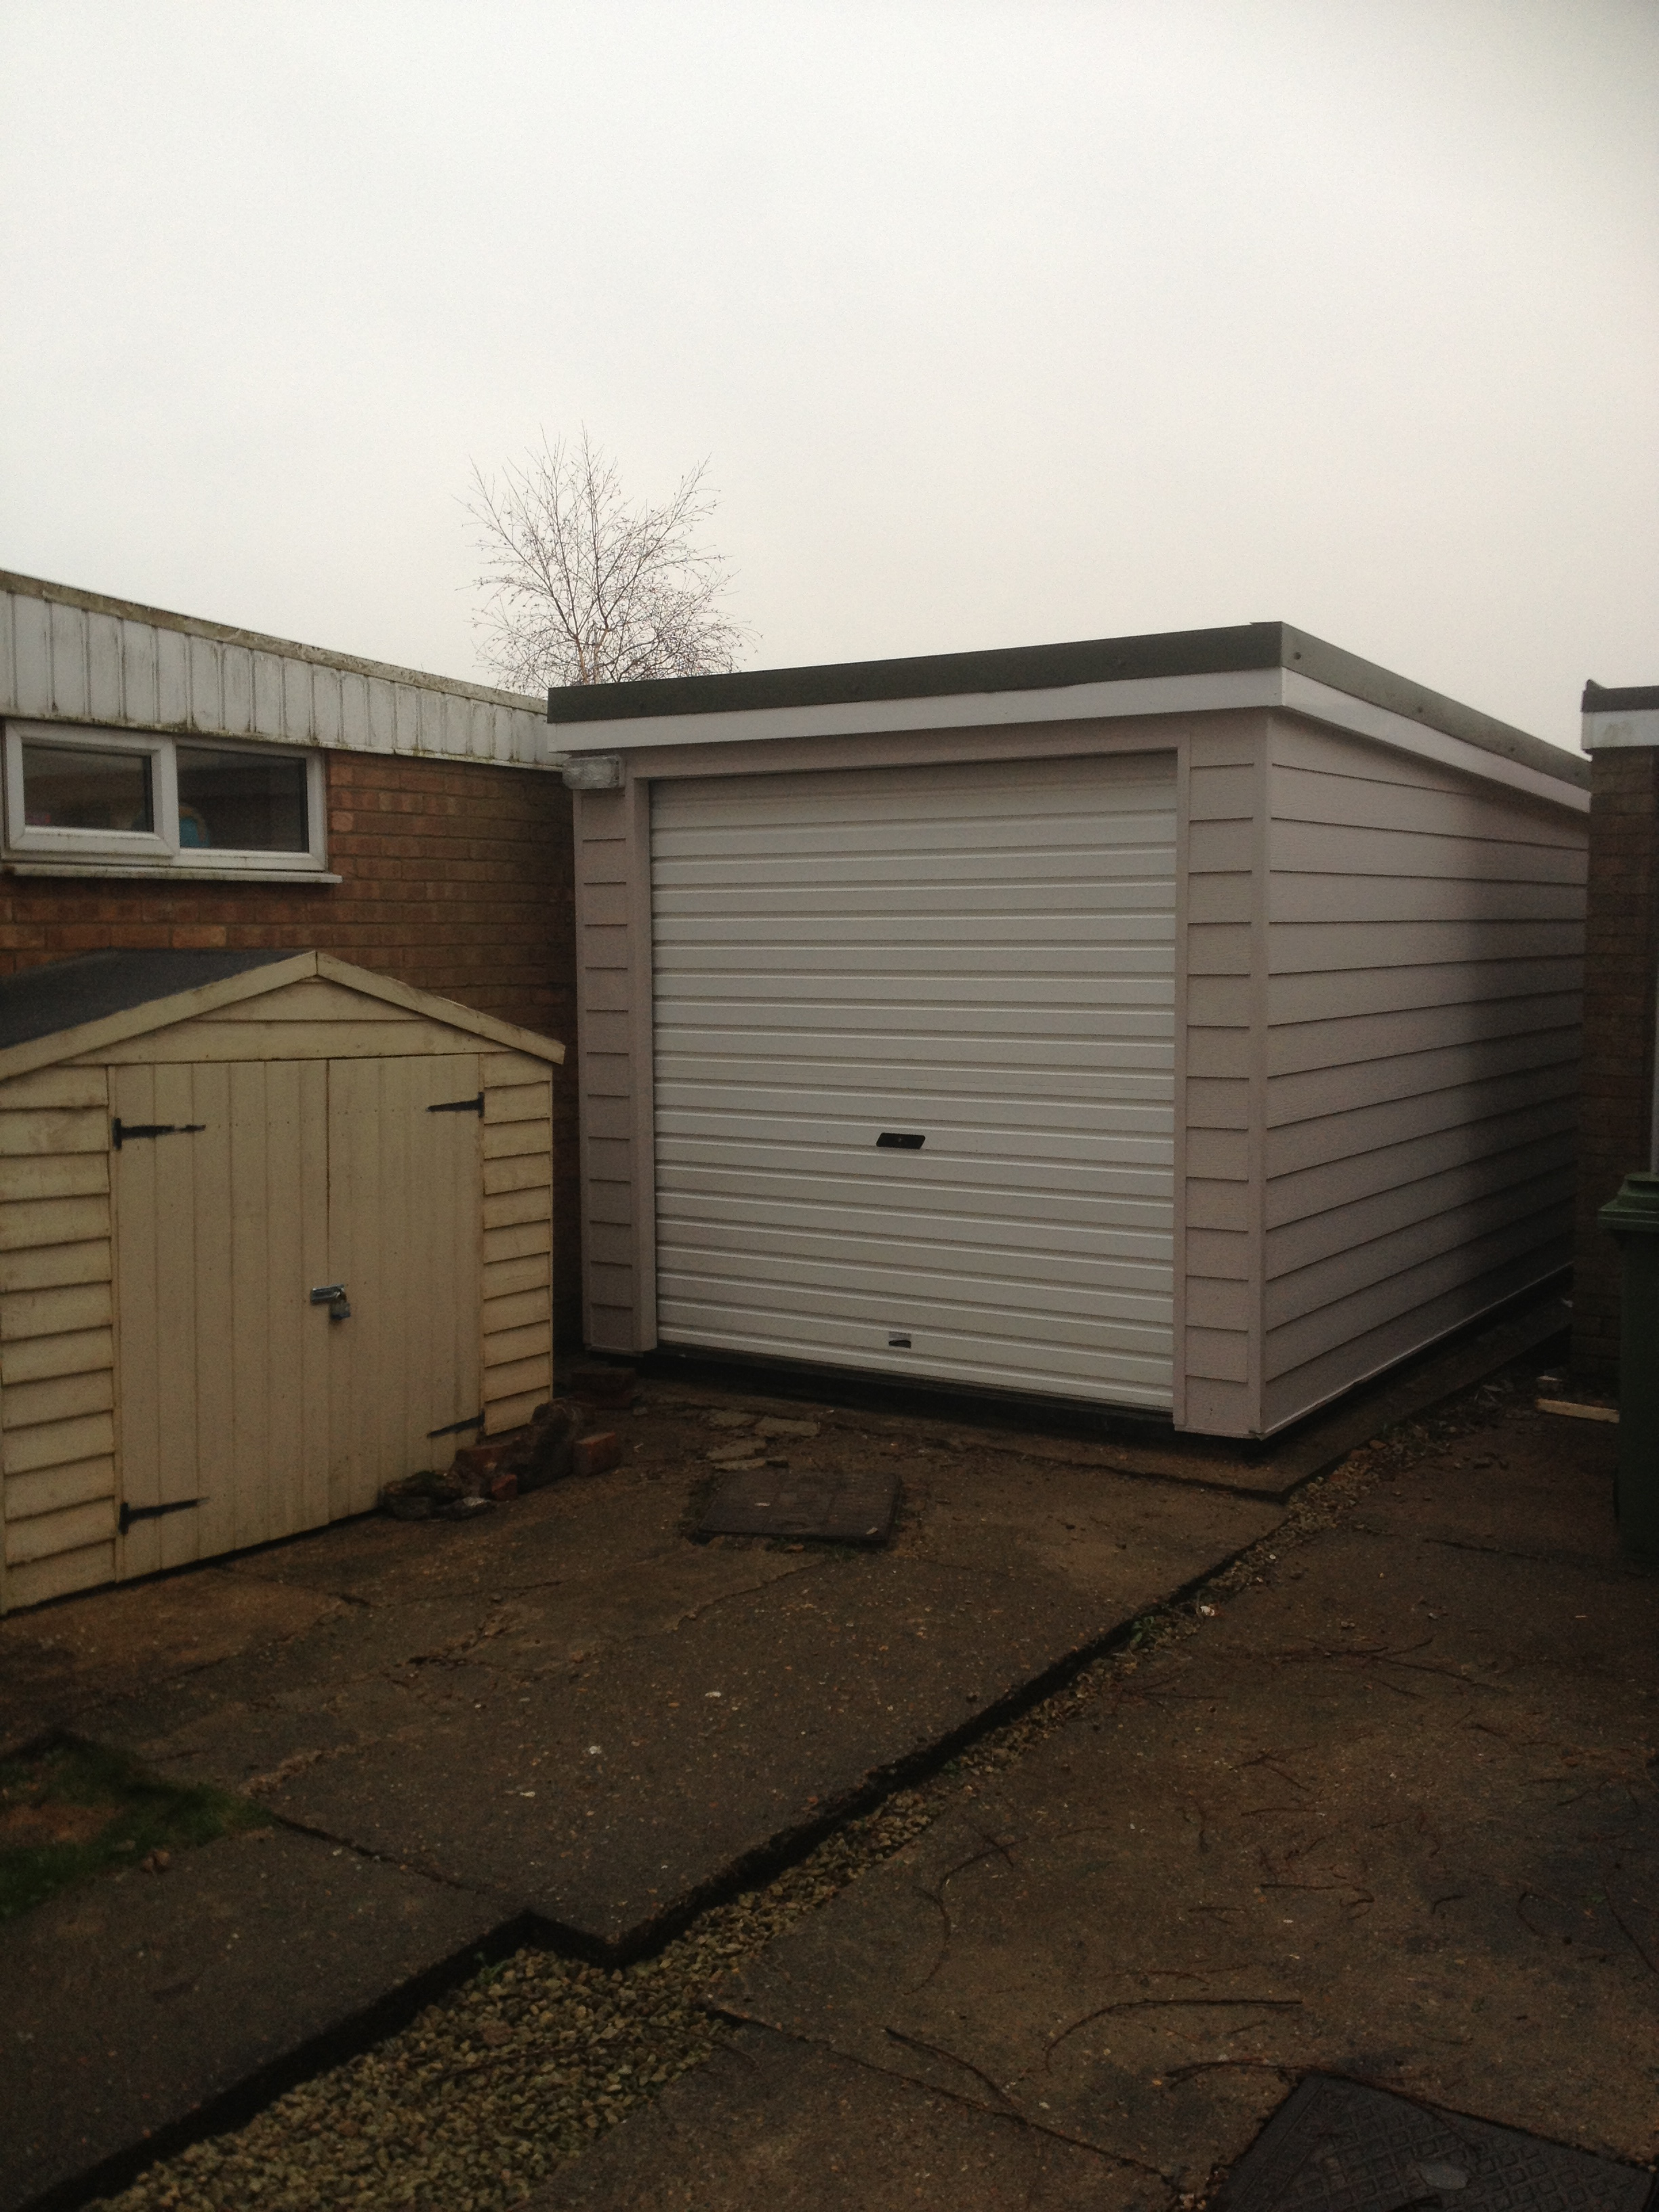 Metal Sheds And Buildings : Project gallery steel sheds garages northern ireland